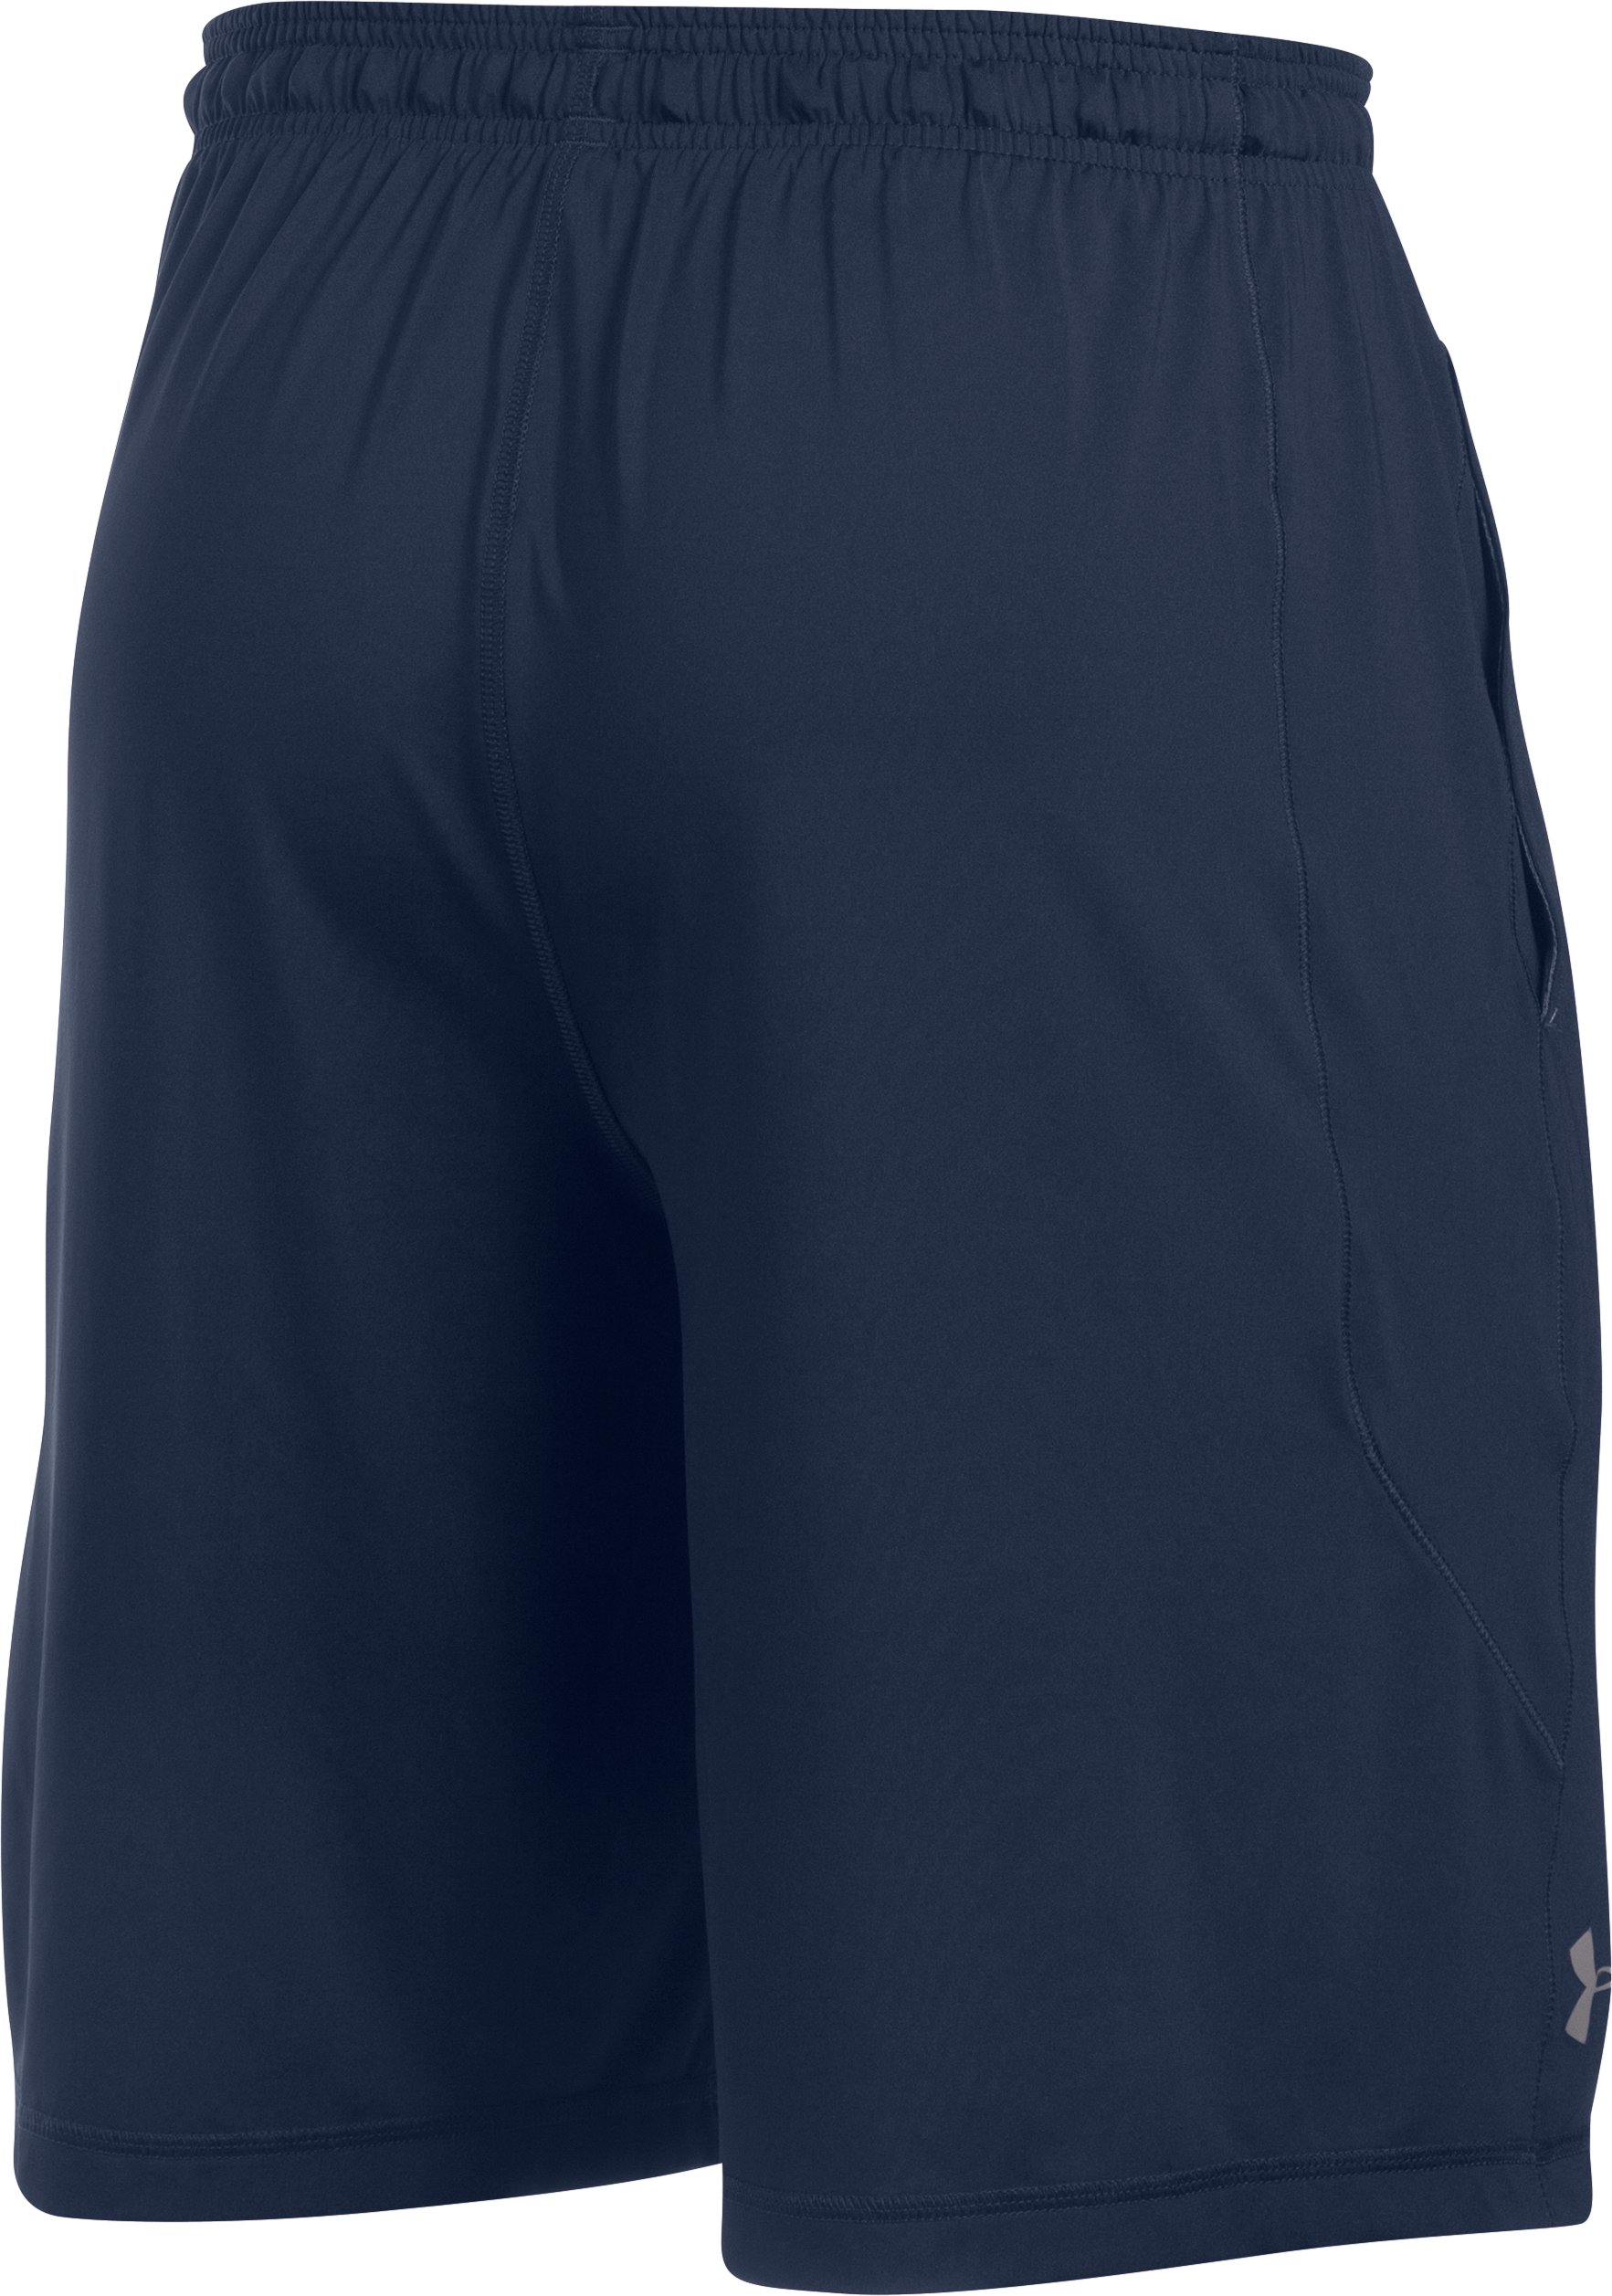 Men's Atlanta Braves Raid Shorts, Midnight Navy, undefined